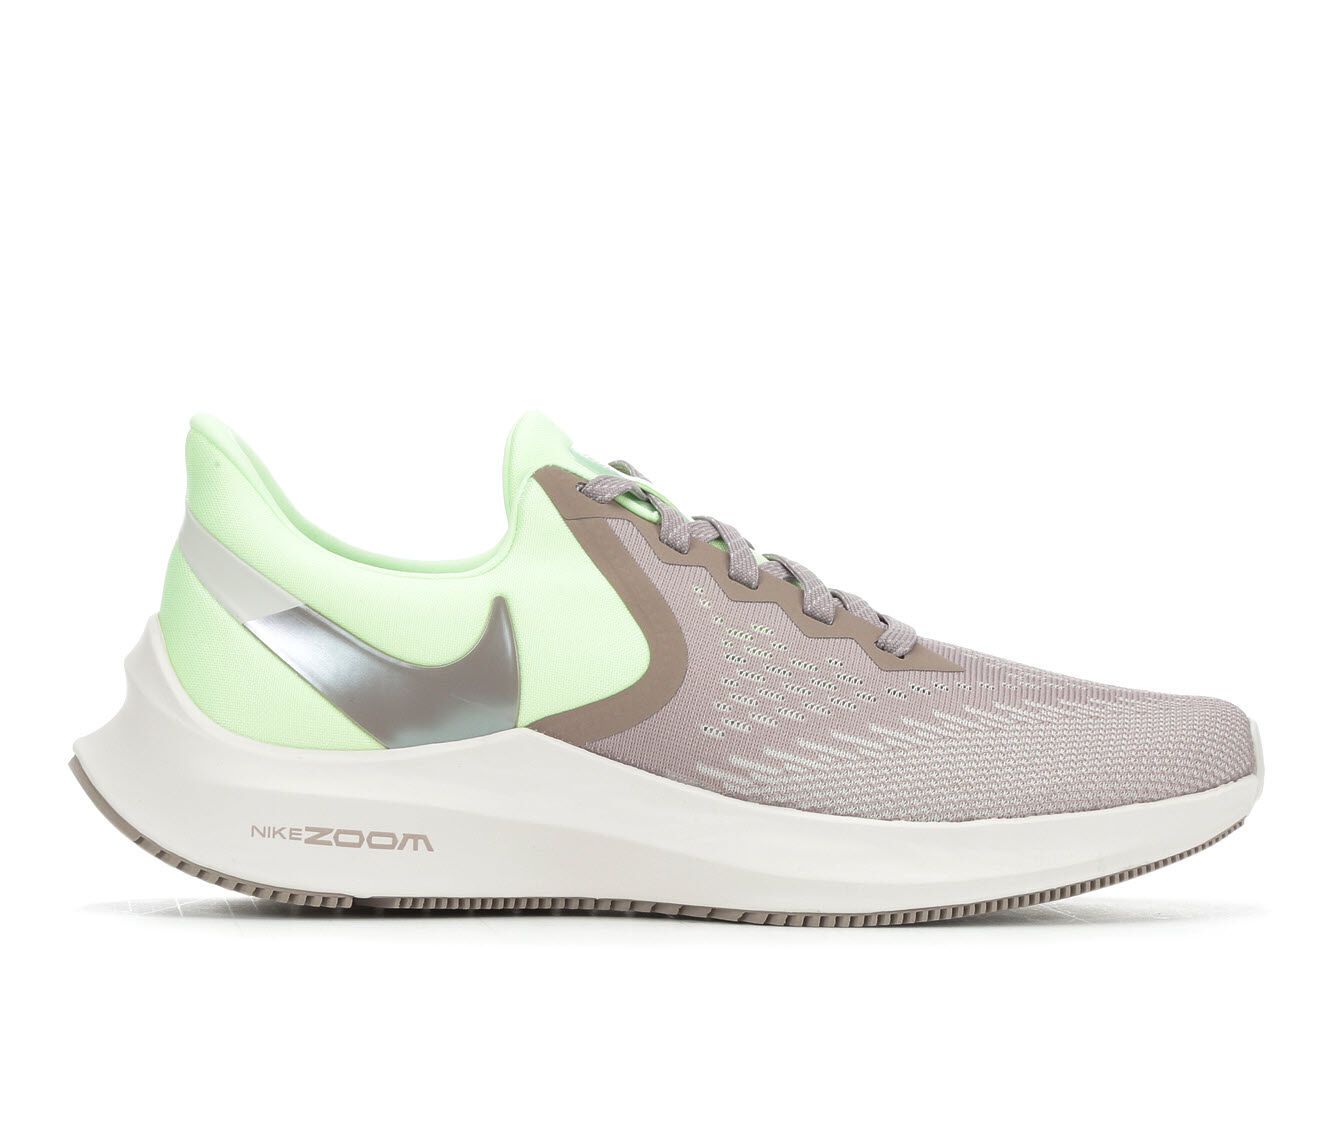 cheapest new style Women's Nike Zoom Winflo 6 Running Shoes Volt/Pumice